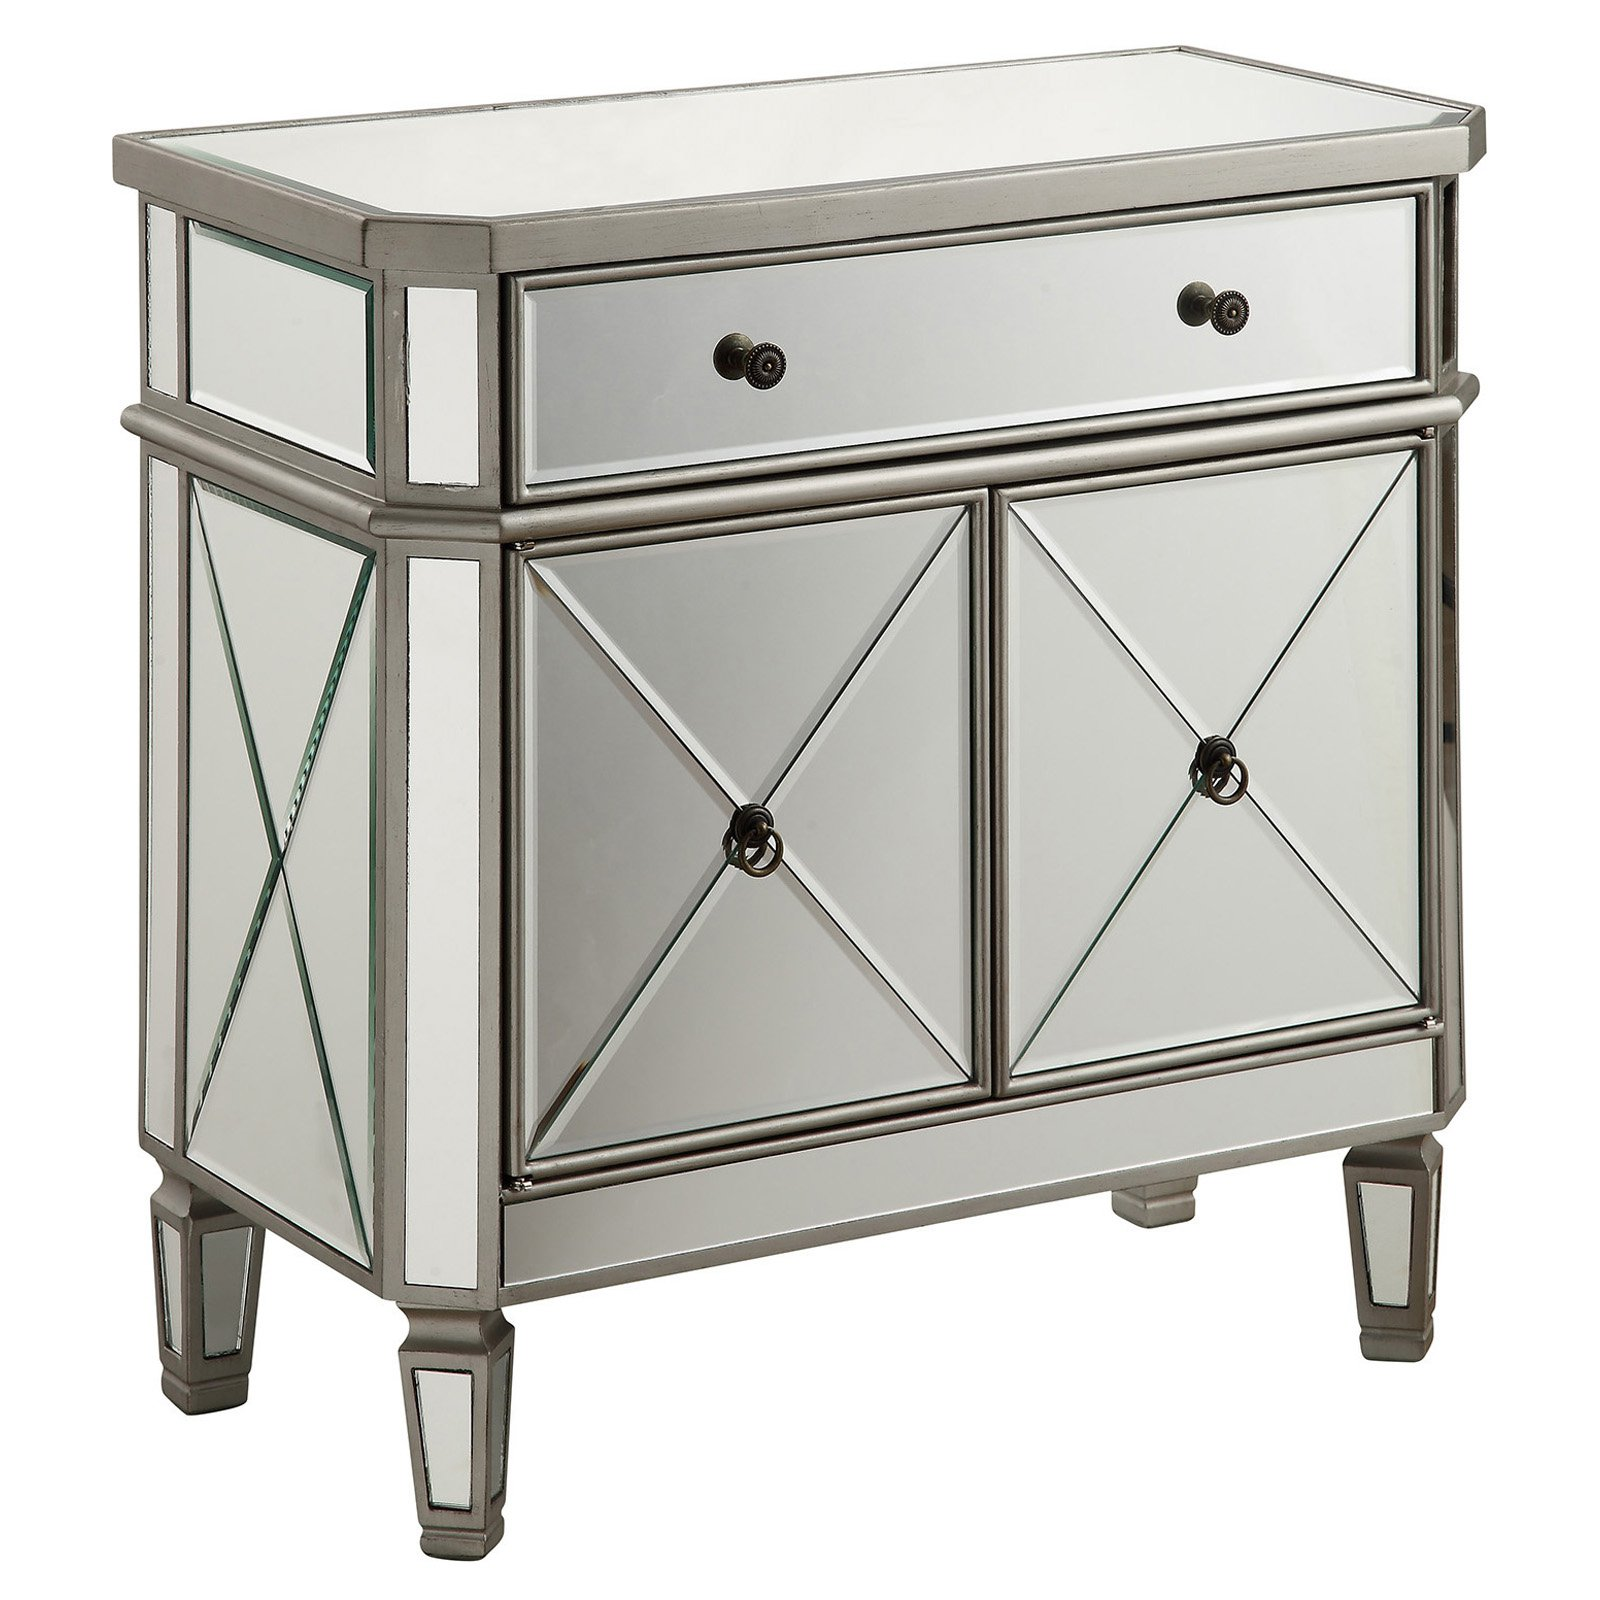 Elegant Lighting Danville 2 Door Mirrored Chest in Silver